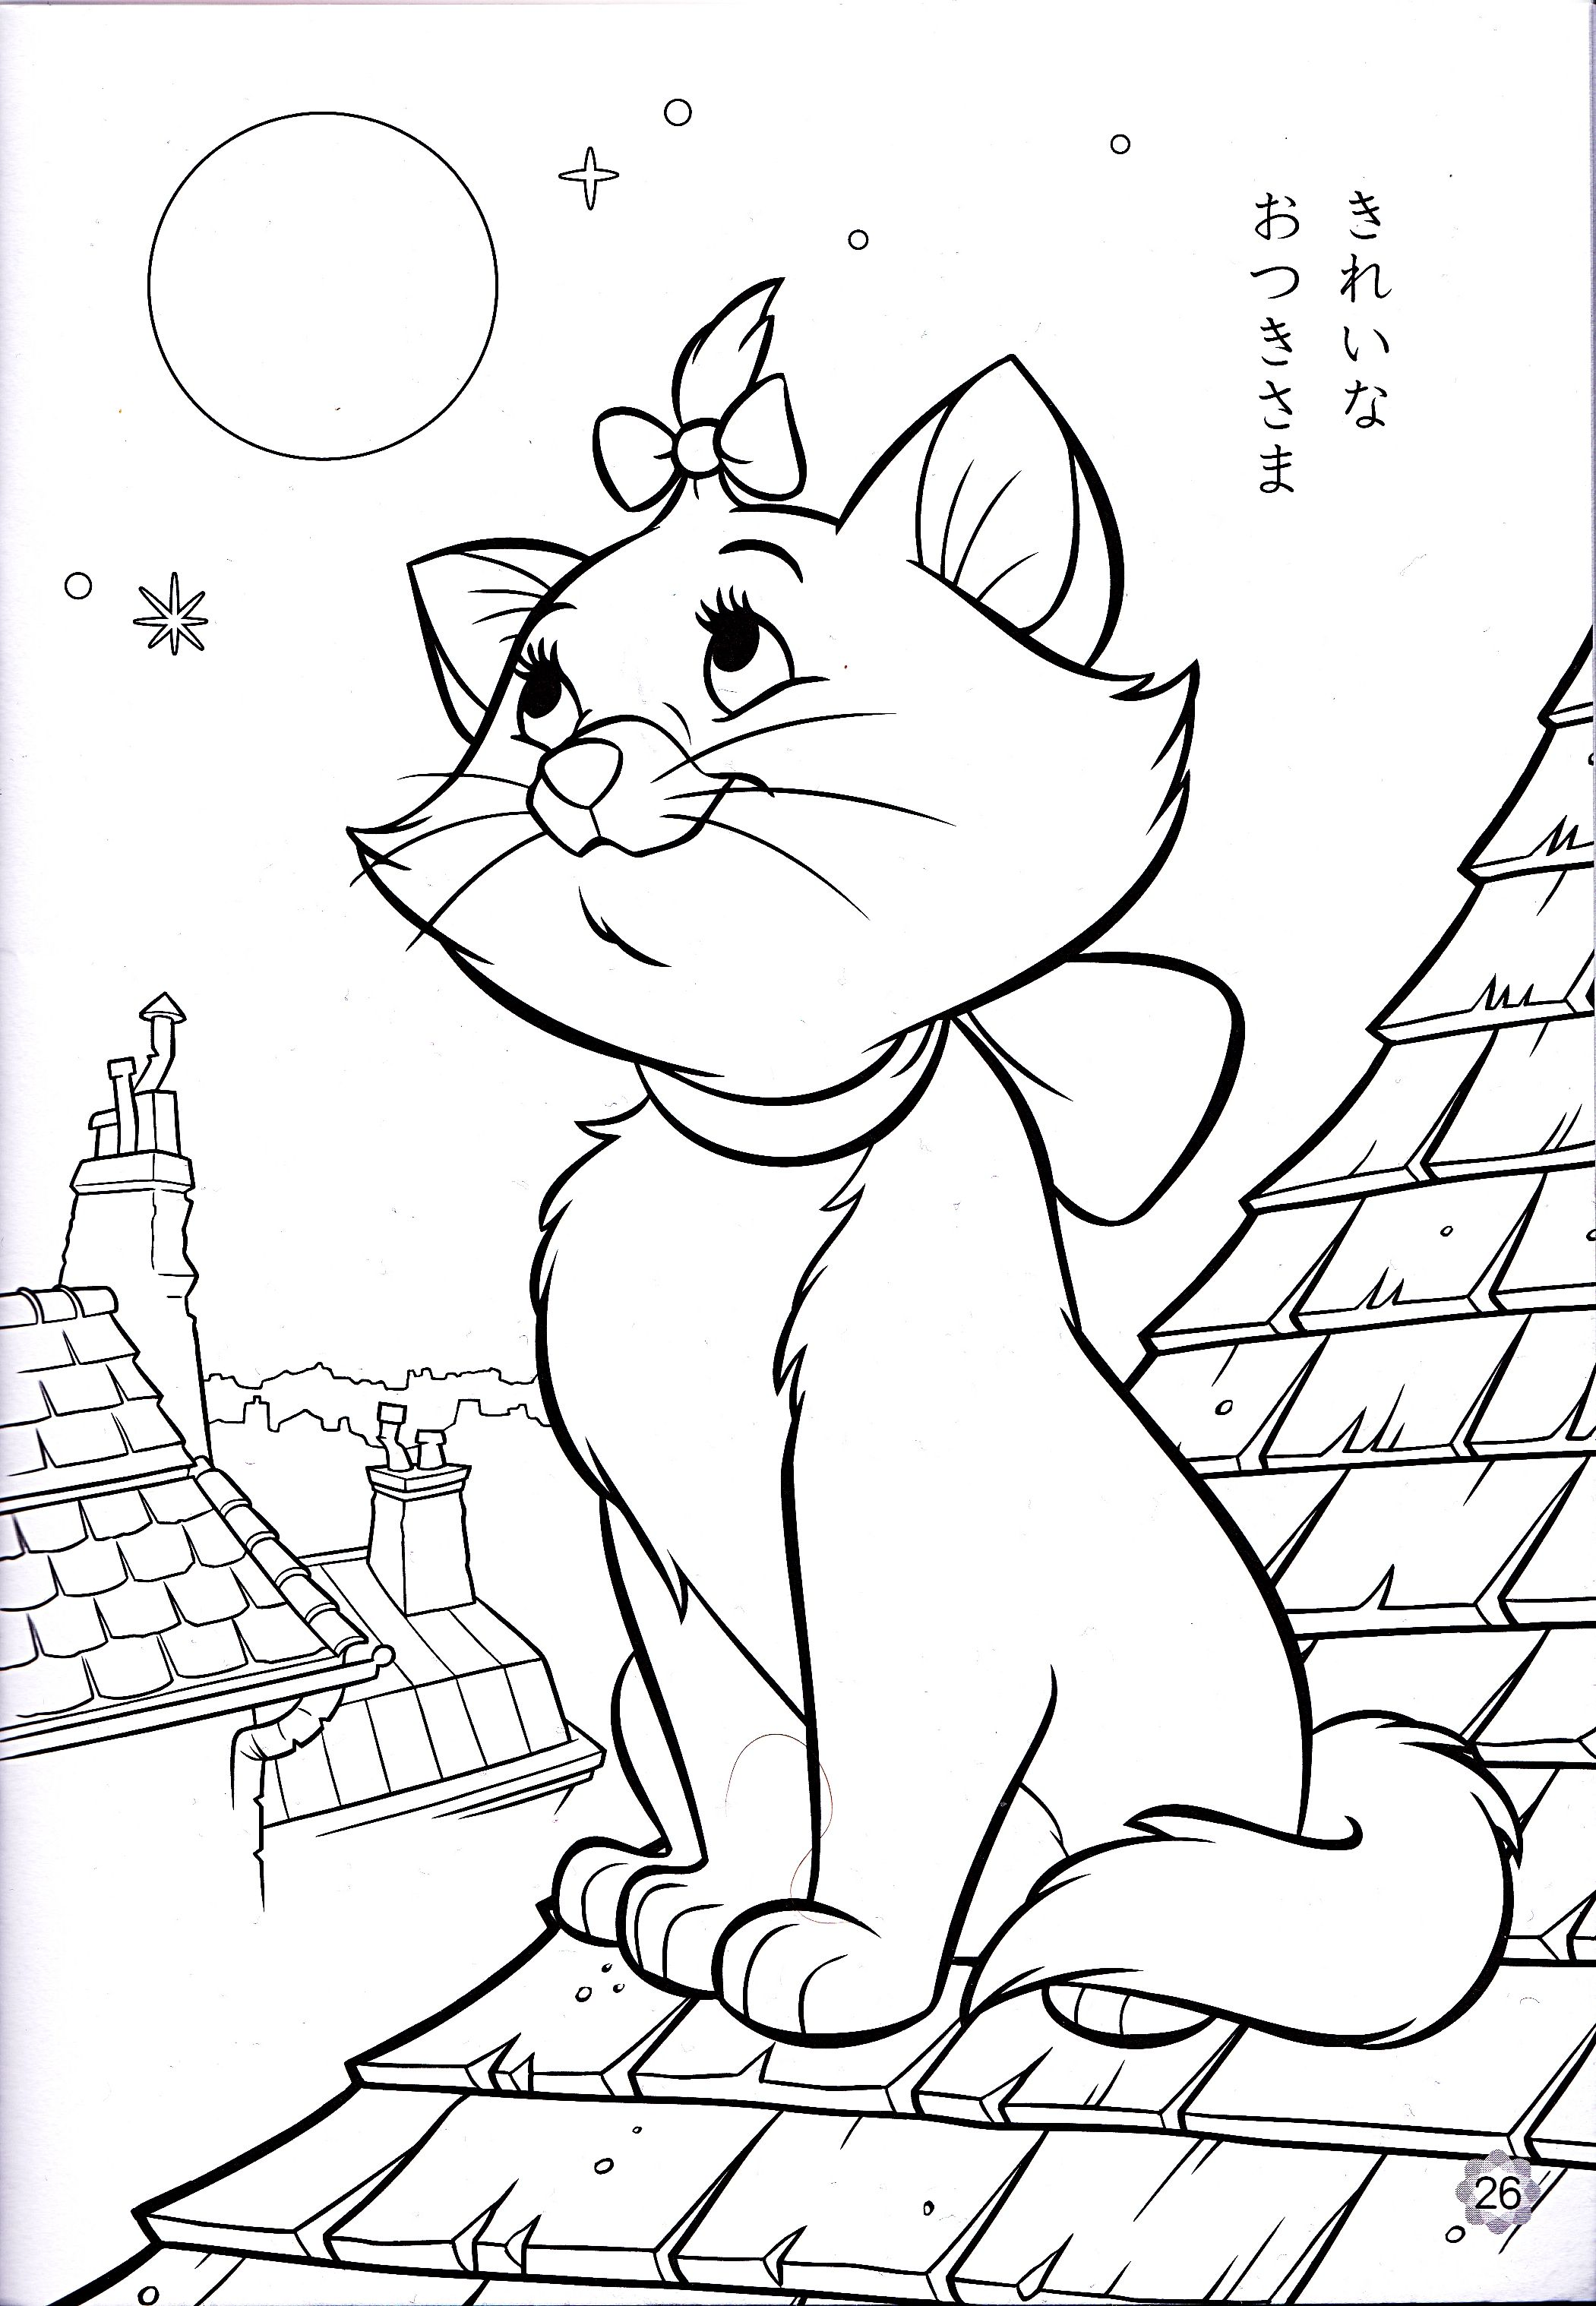 walt disney coloring page of marie from the aristocats hd wallpaper and background photos of walt disney coloring pages marie for fans of walt disney